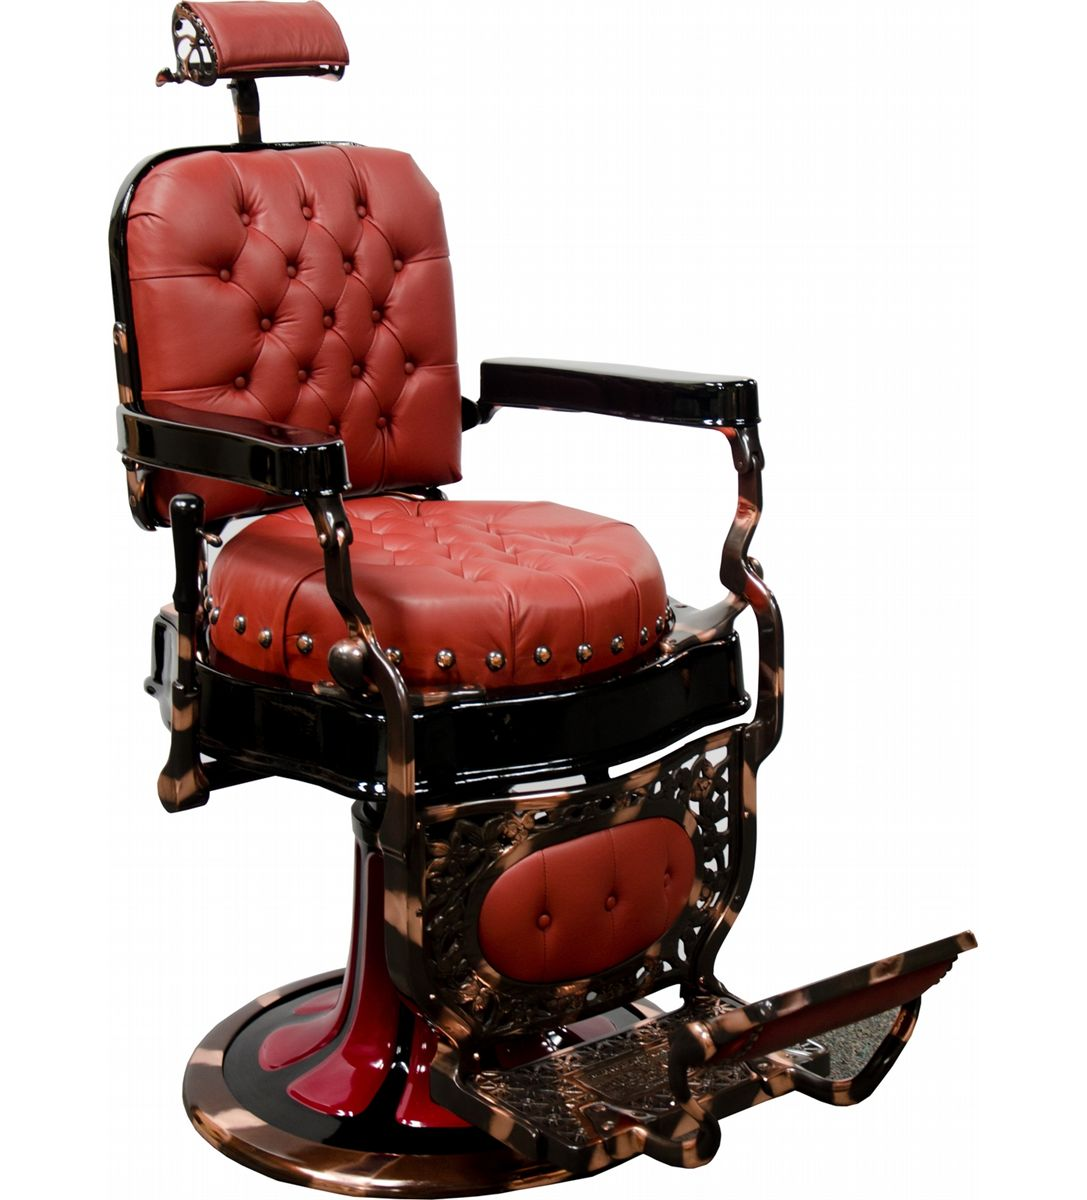 Uncategorized barber chair the legacy of koken barber chairs antique barber chairs - Gallery For Gt Classic Barber Chair Omni Professional Barber Chair